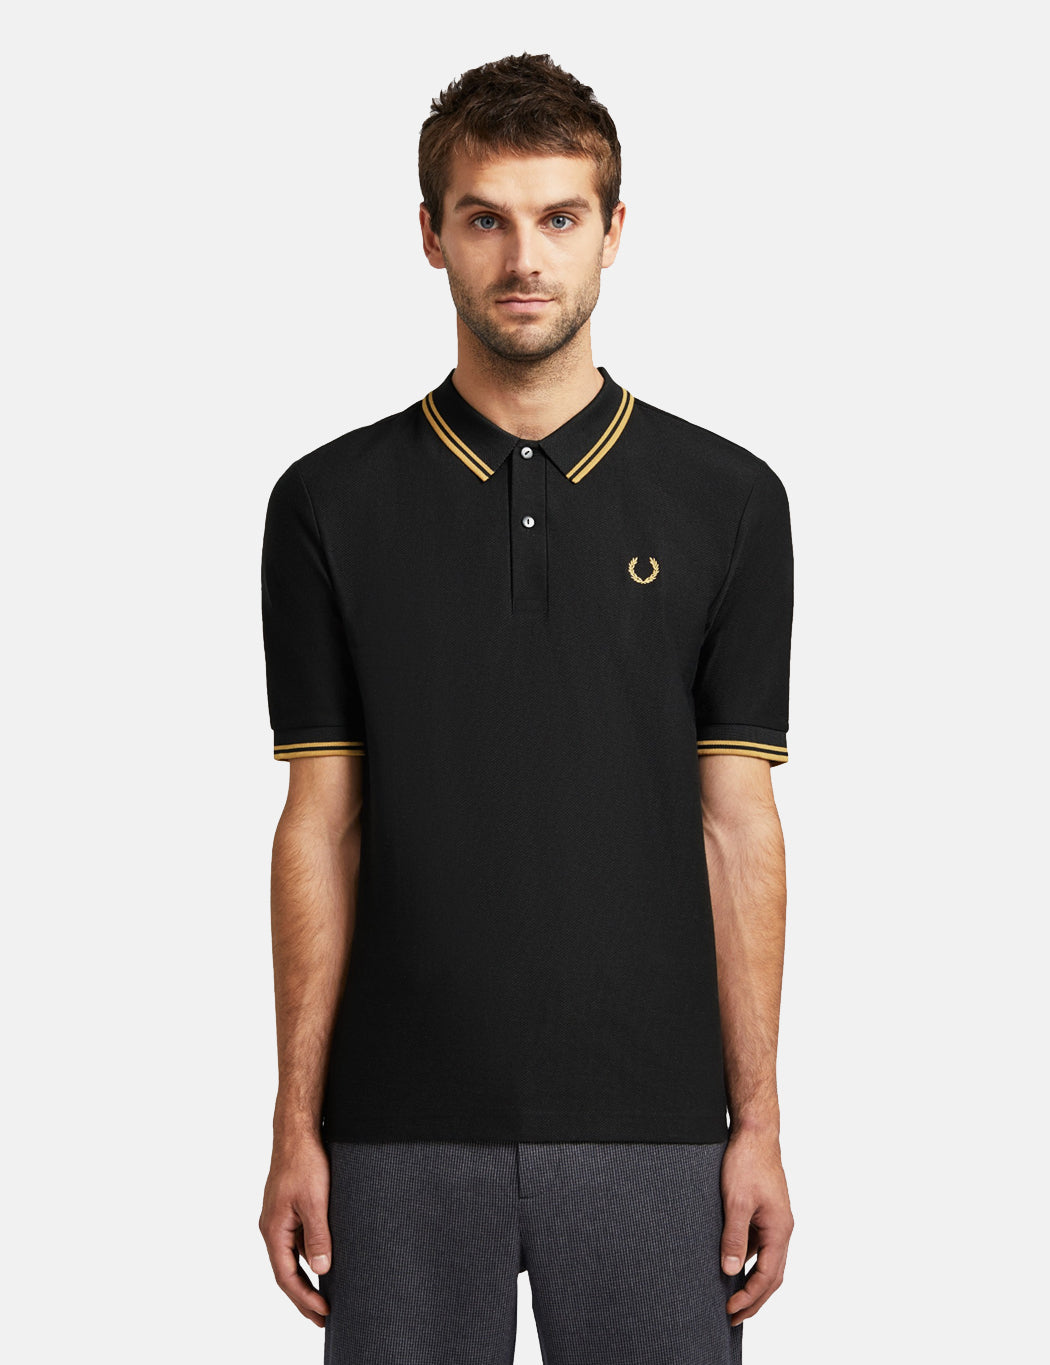 Fred Perry x Miles Kane Textured Pique Shirt - Black | URBAN EXCESS